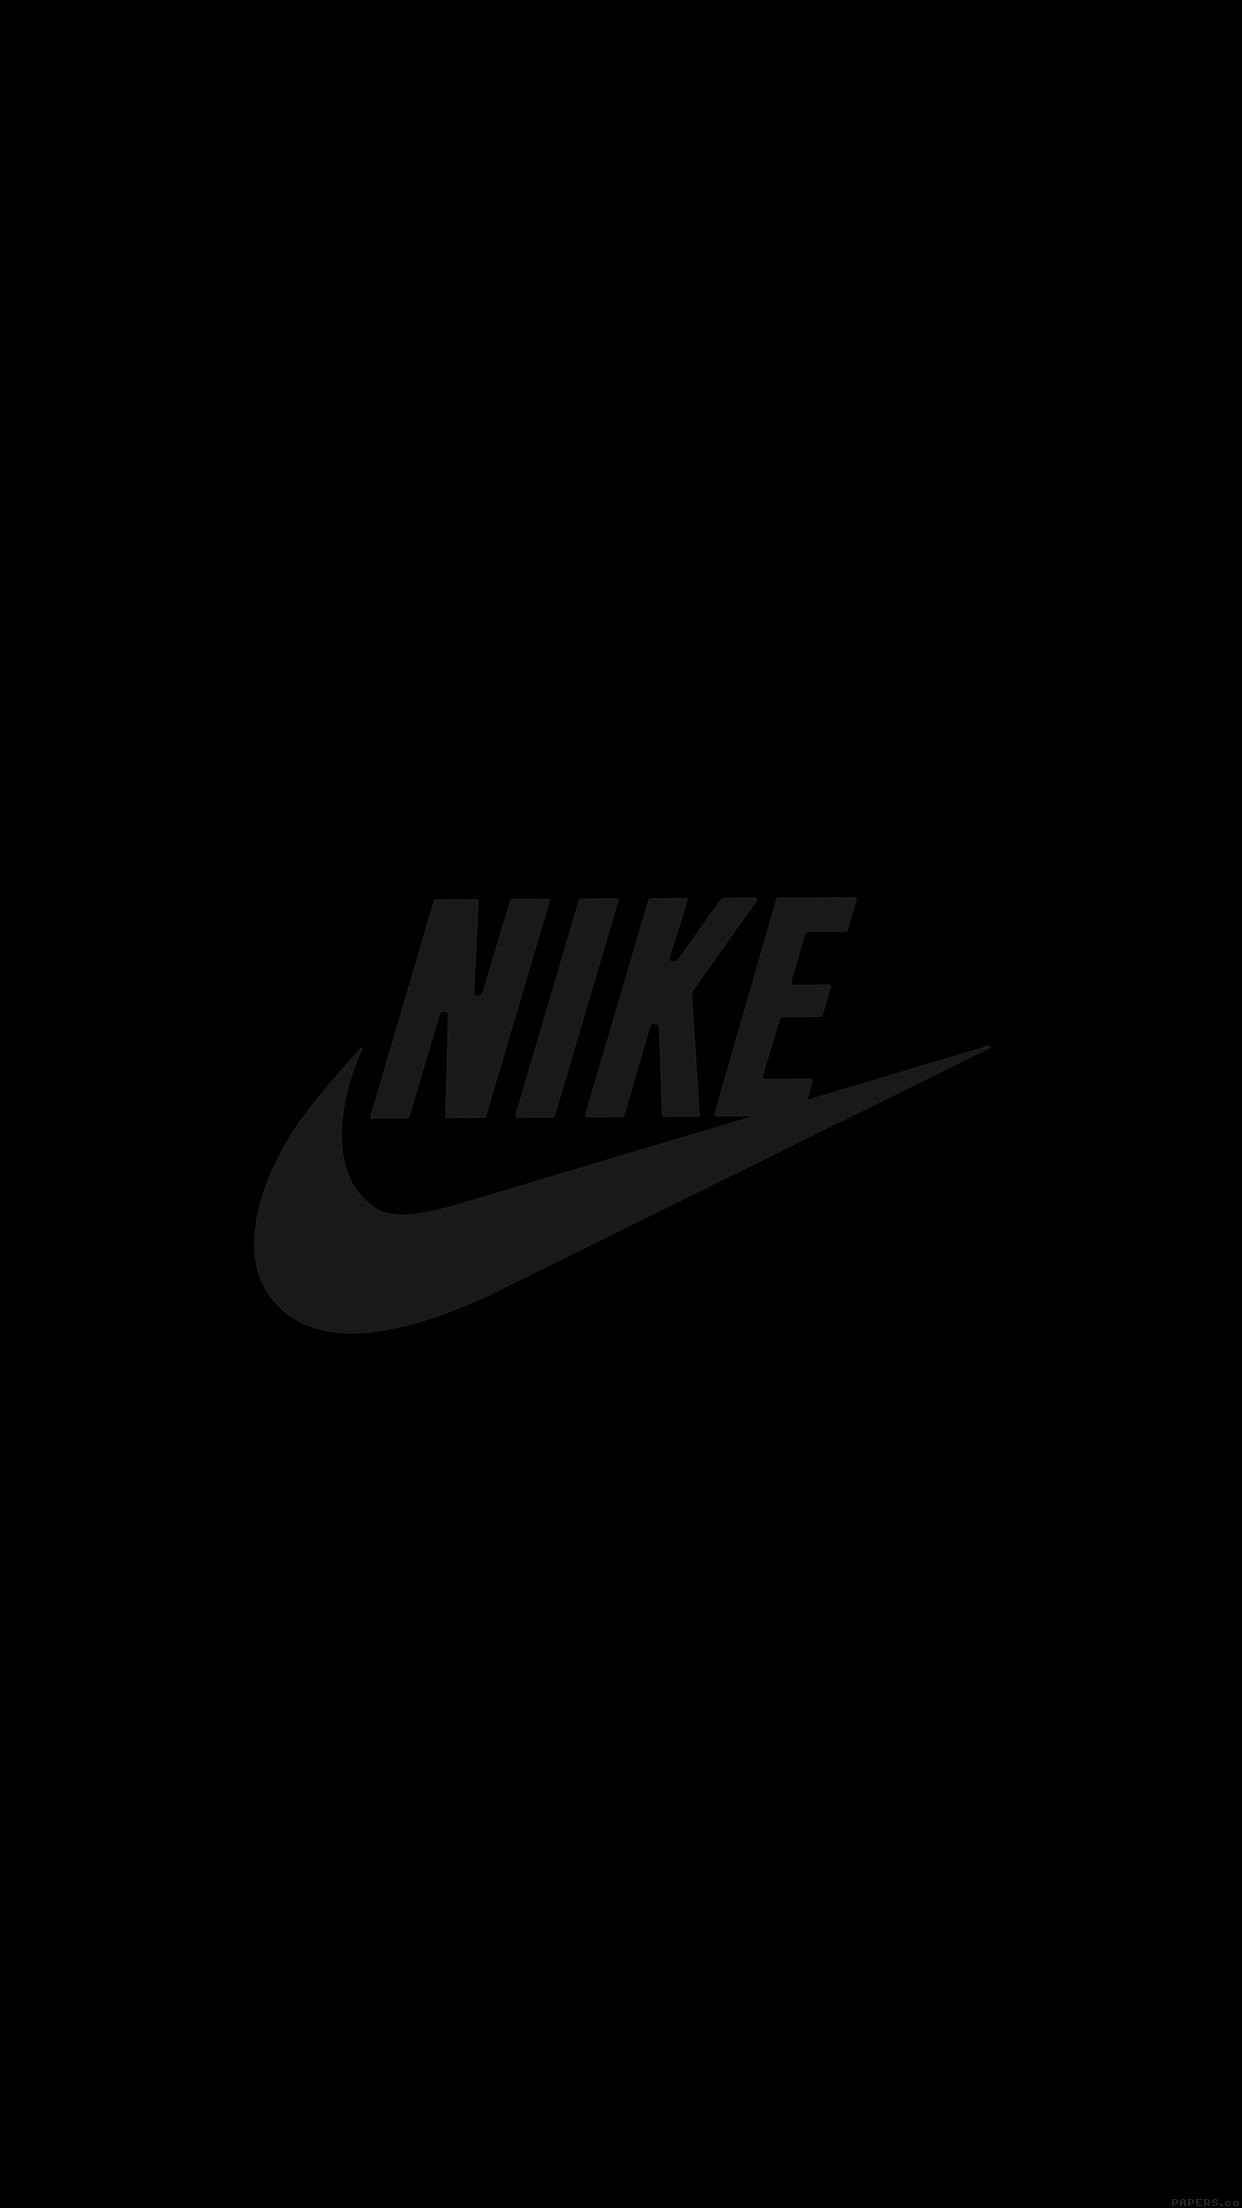 Nike best wallpapers 1920x1080 cool football wallpaper new and best 97000 of desktop wallpapers hd backgrounds for any computer laptop voltagebd Images